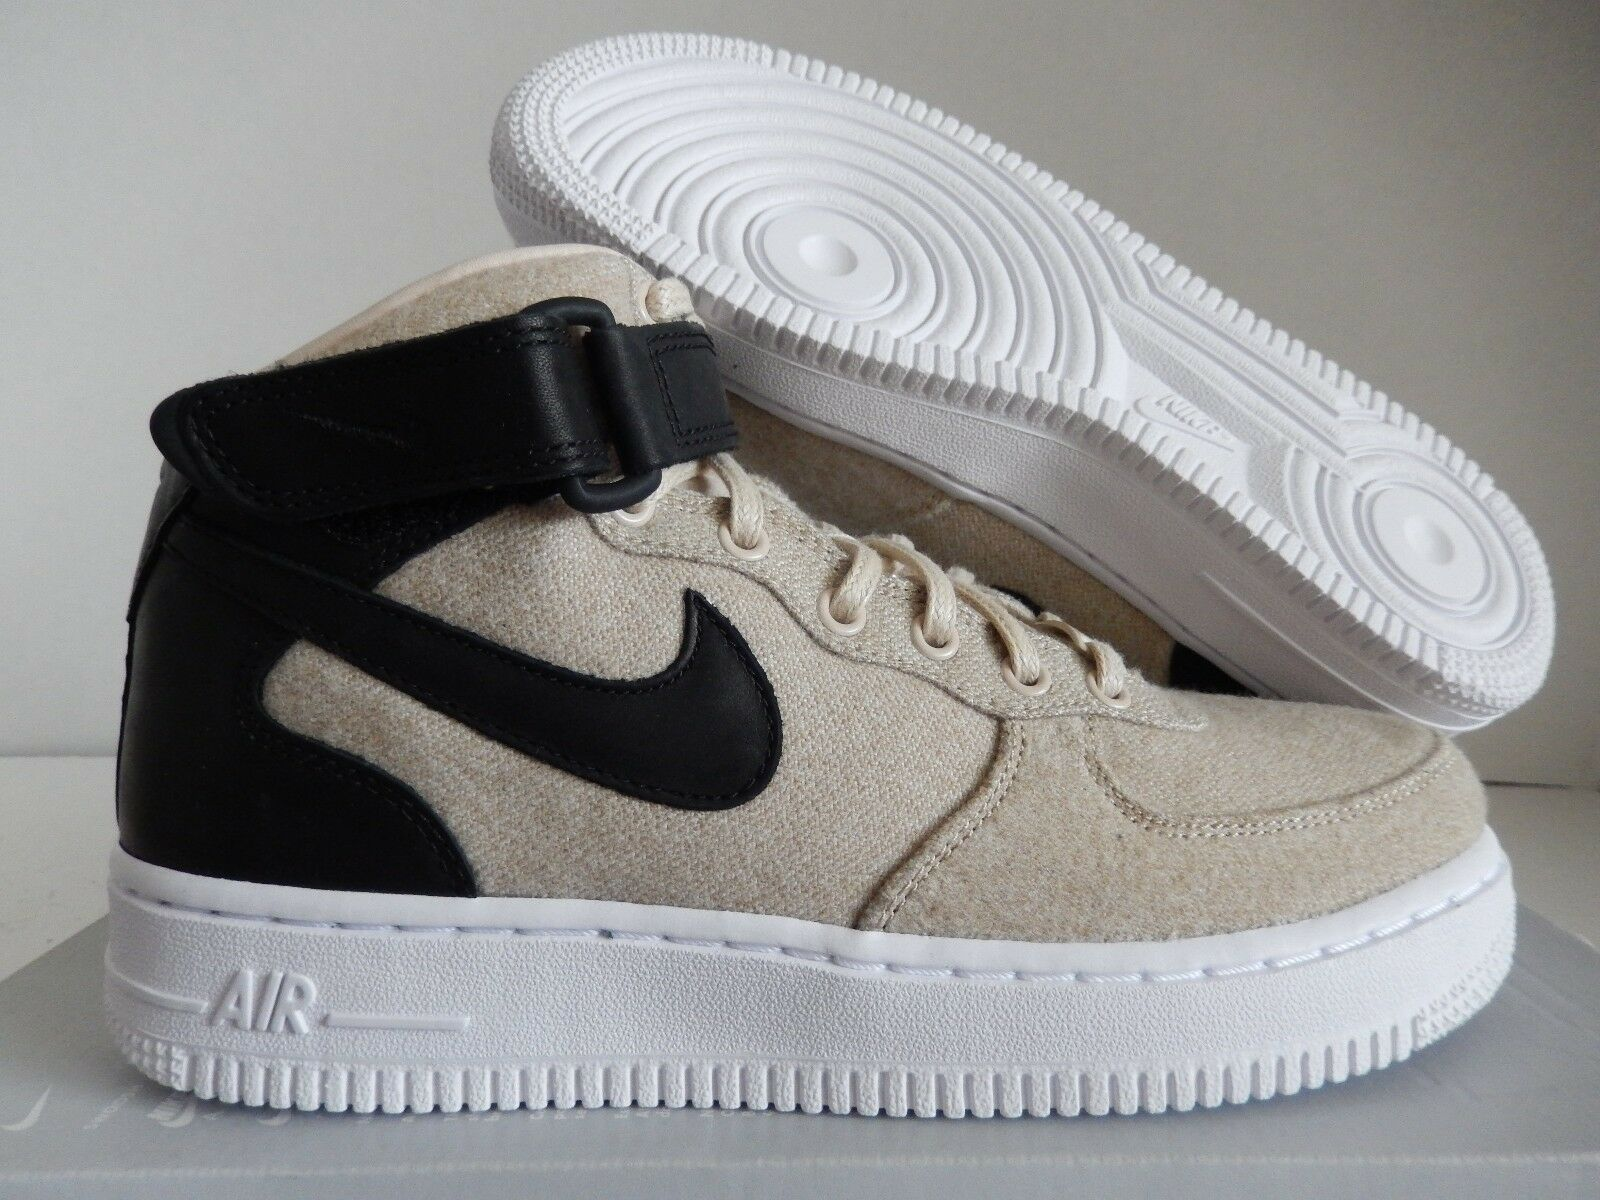 WMNS NIKE AIR FORCE 1 07 LTHR PREMIUM COOL GREY SZ 9 WOOL PACK! [857666-001]